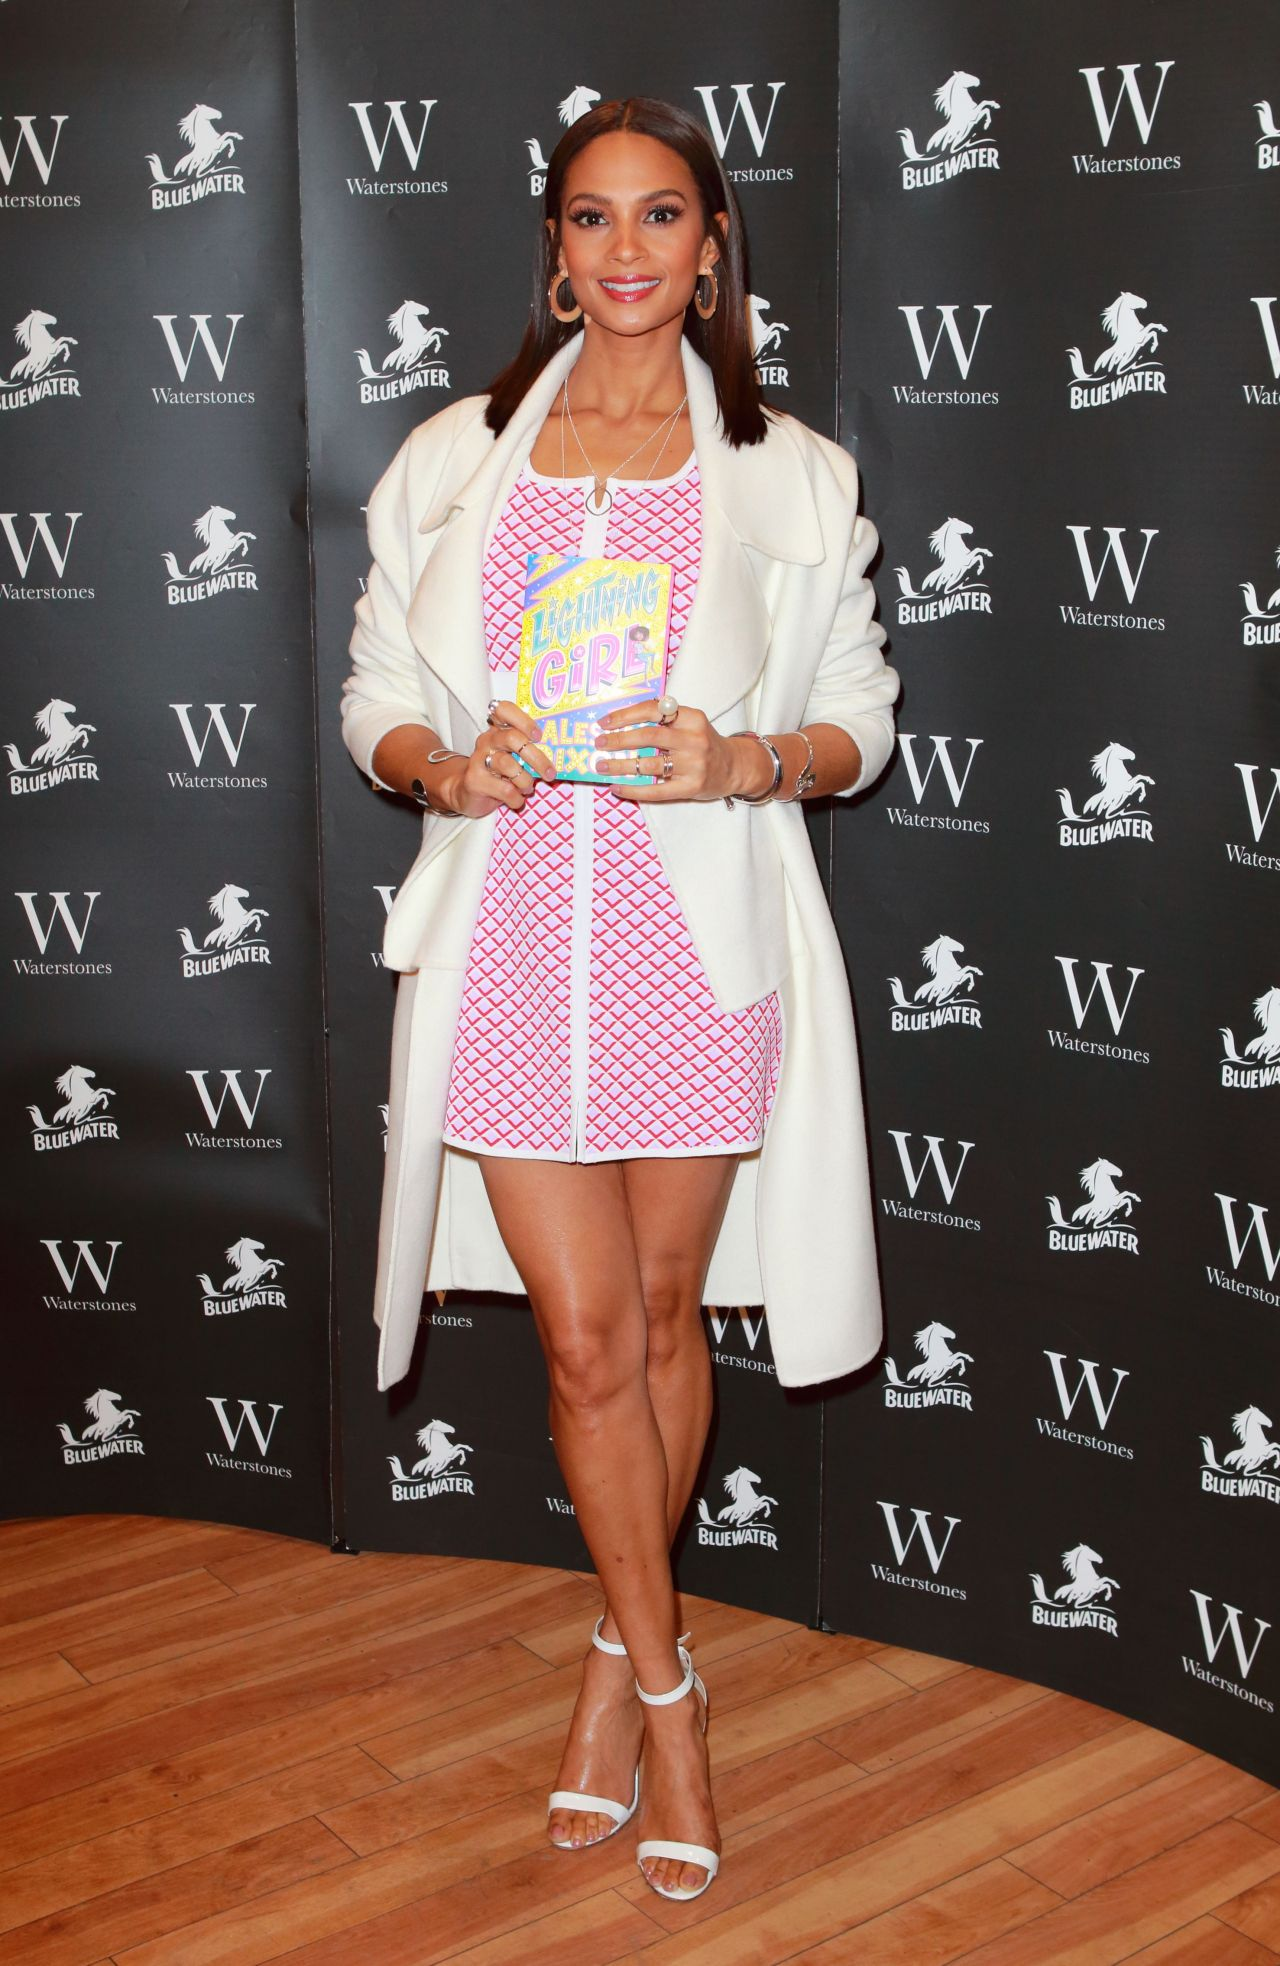 68428849_alesha-dixon-lightning-girl-book-signing-in-dartford-06-04-2018-7x_04.jpg